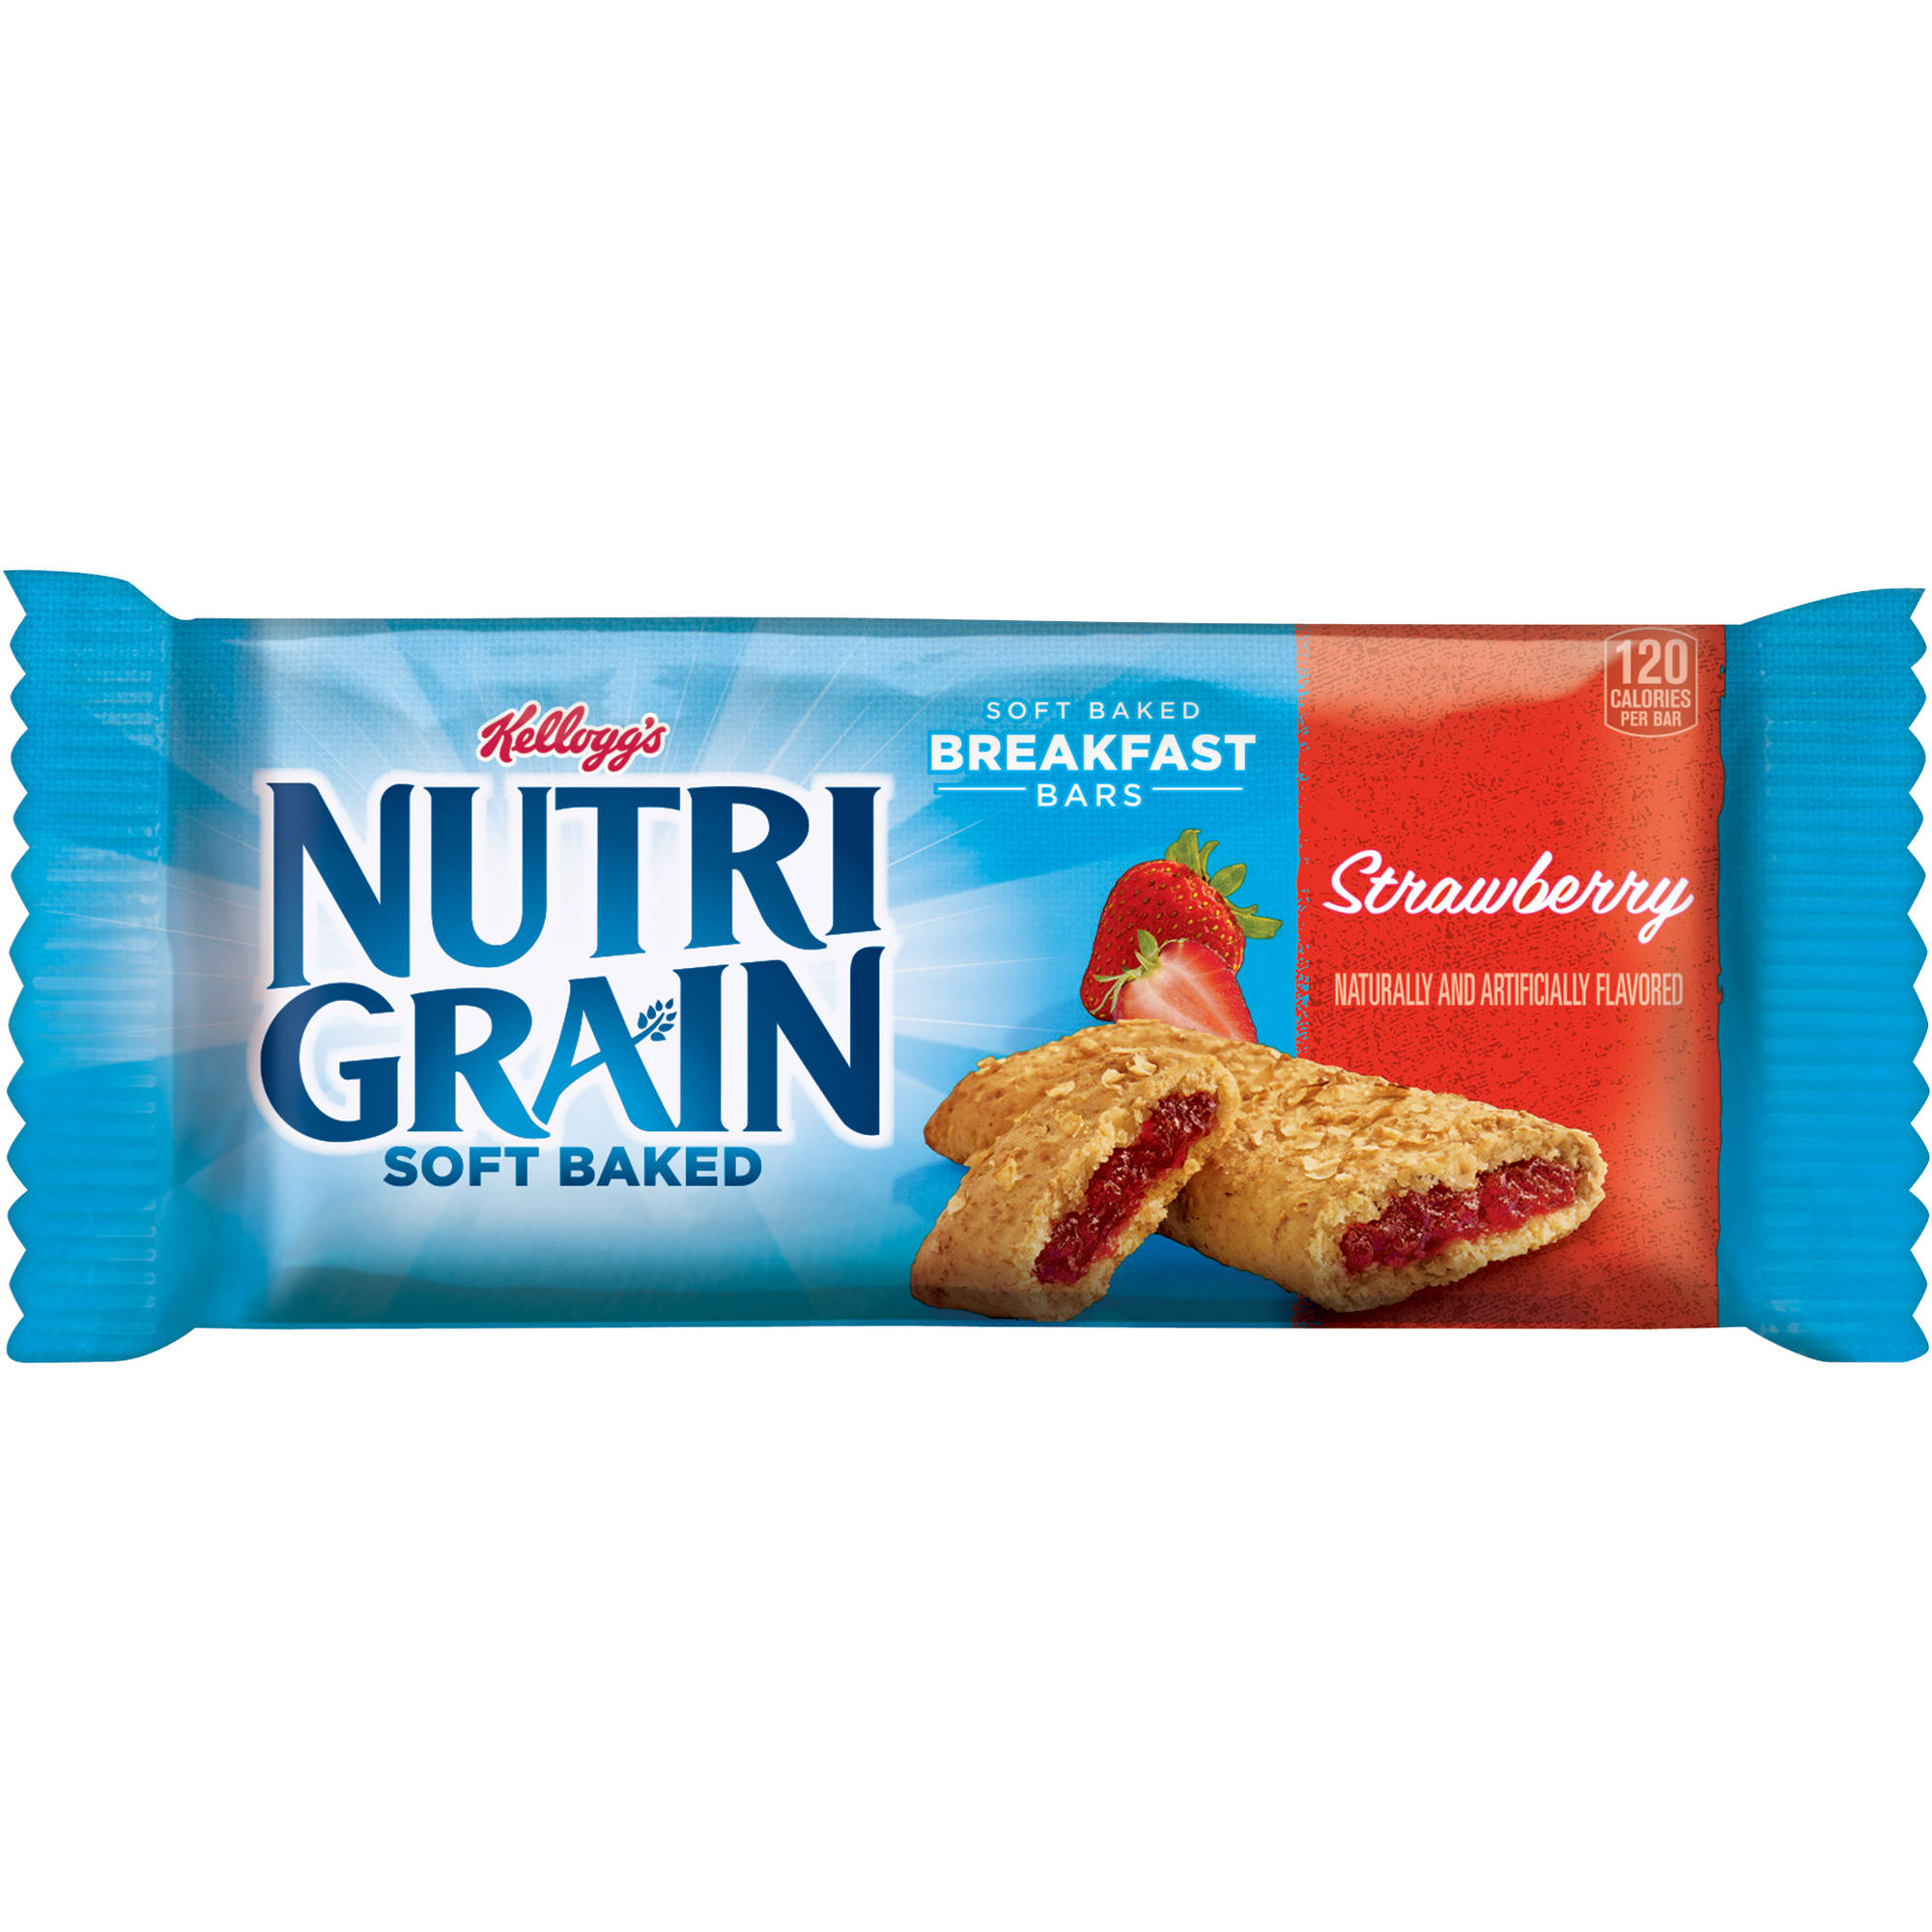 Kellogg's Nutri-Grain Soft Baked Strawberry Breakfast Bar, 1.3 oz